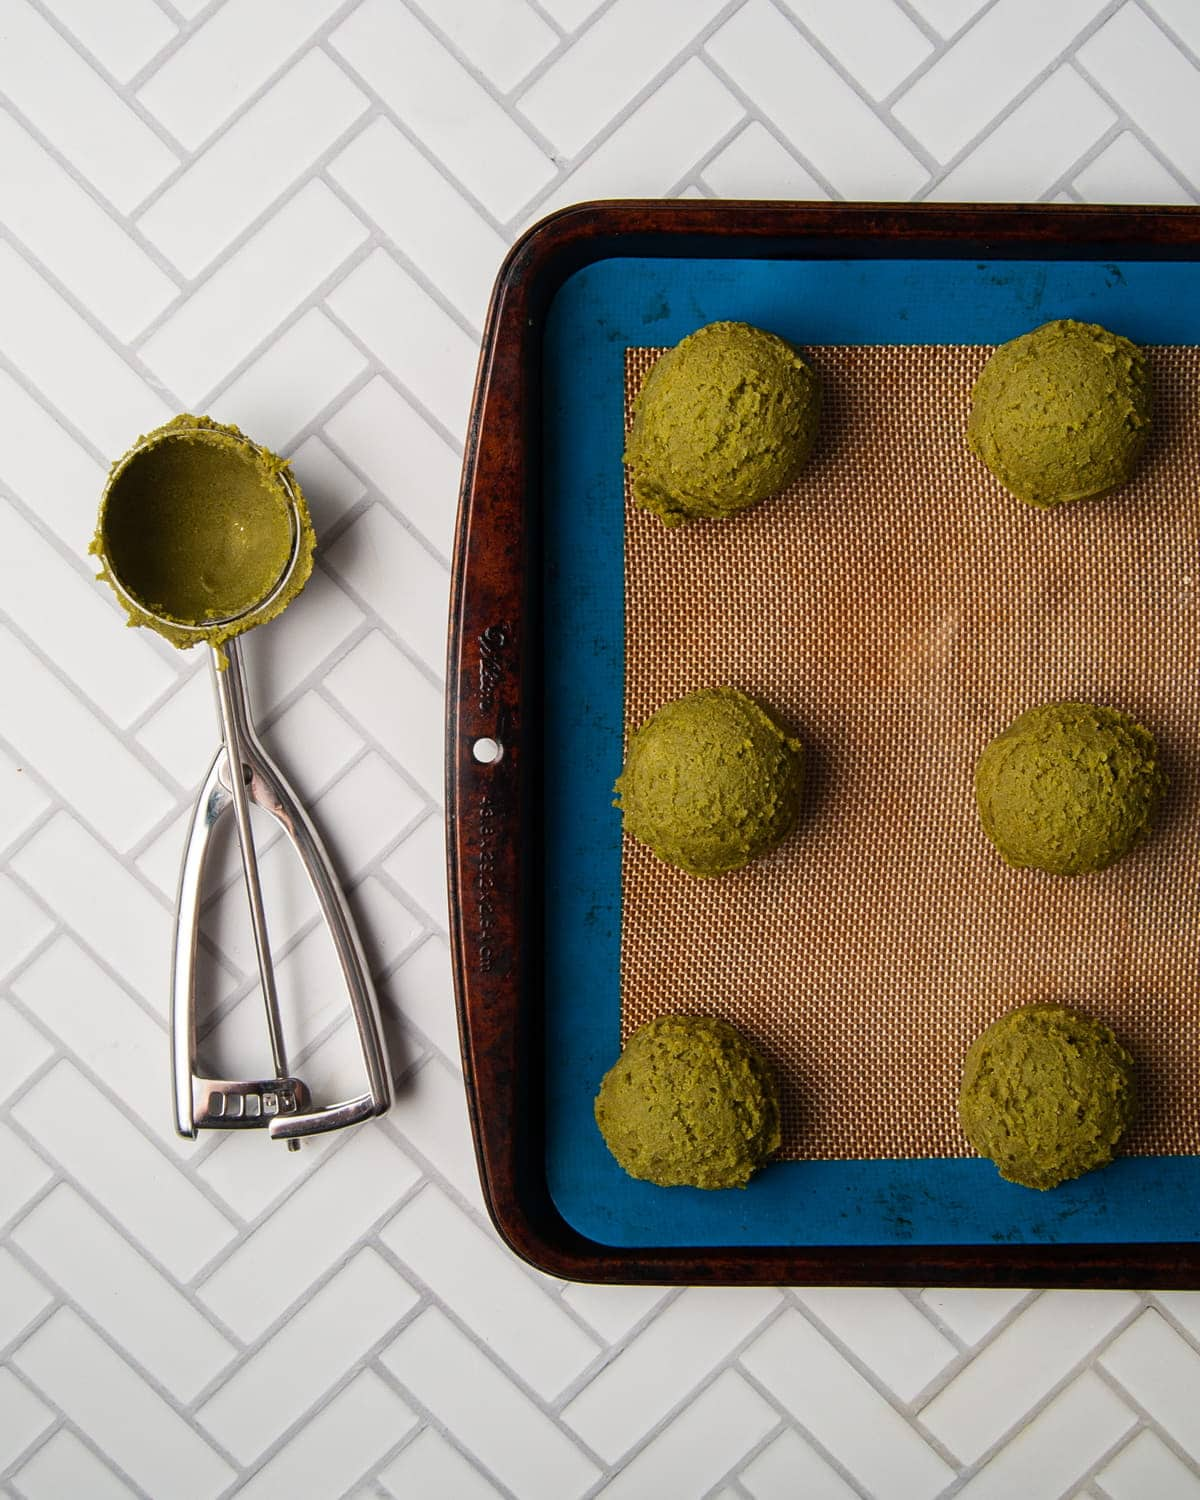 using a cookie scoop to shape matcha cookies and place them on baking sheet